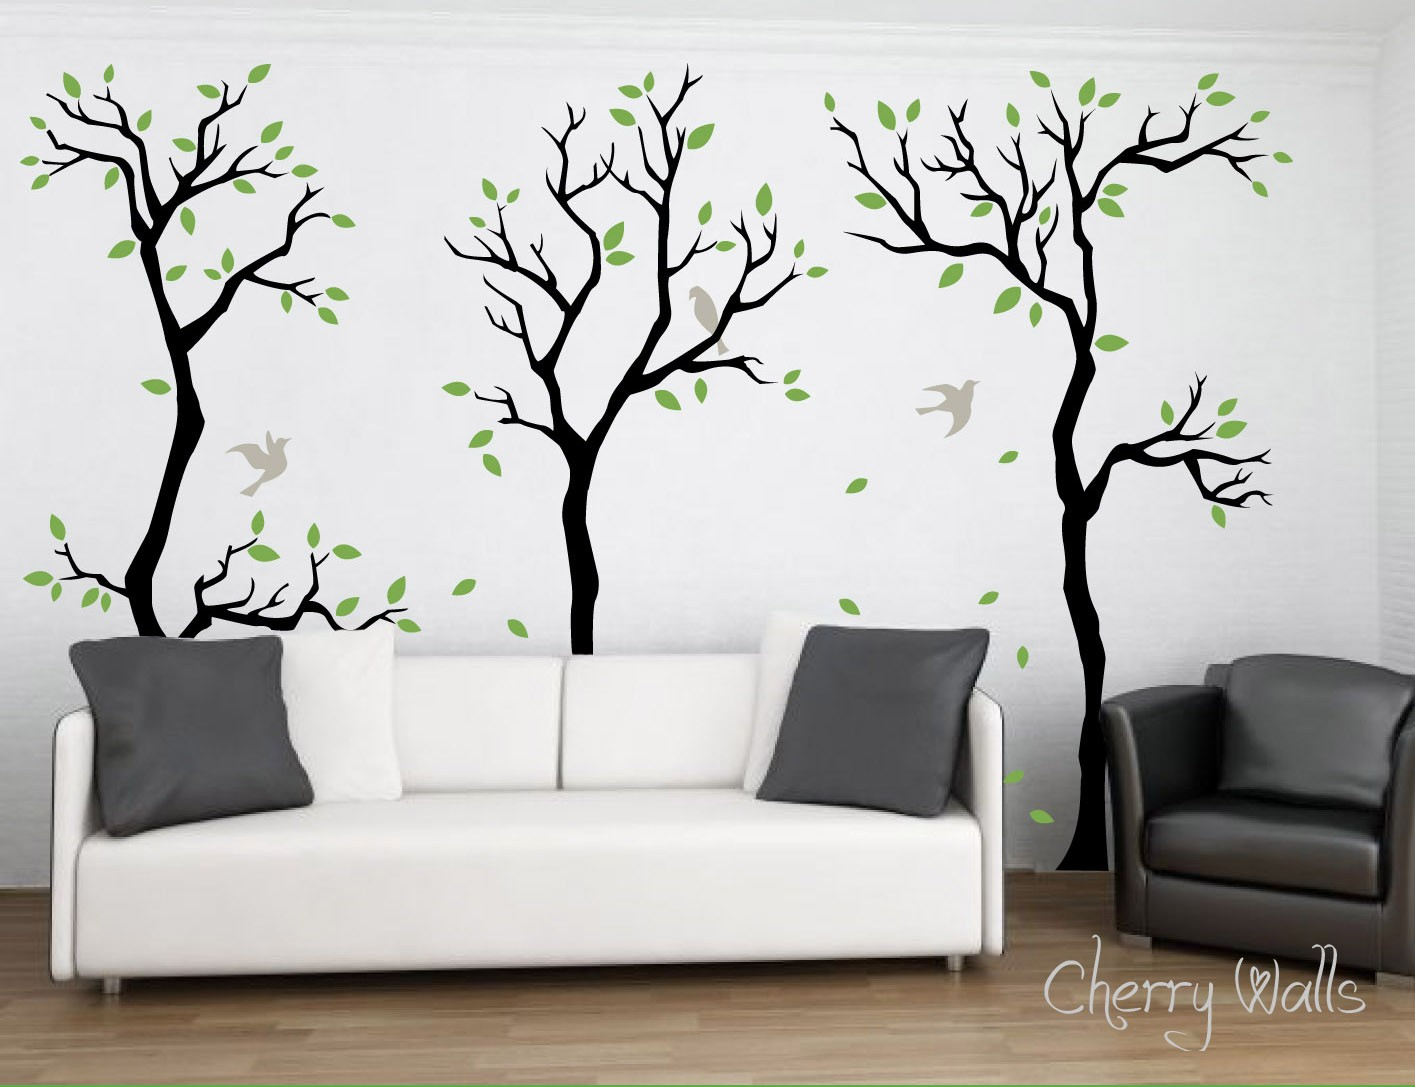 Cool Wall Decal Unique Wall Decals 2017 Grasscloth Wallpaper